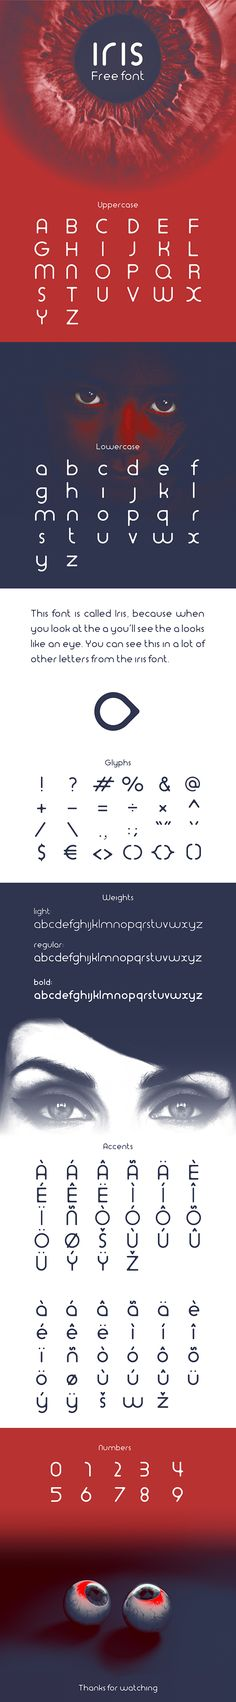 Iris font is a free compete round font with no sharp angles.This font is called Iris, because when you look at the a you'll see the a looks like an eye. You can see this in a lot of other letters from the iris font.